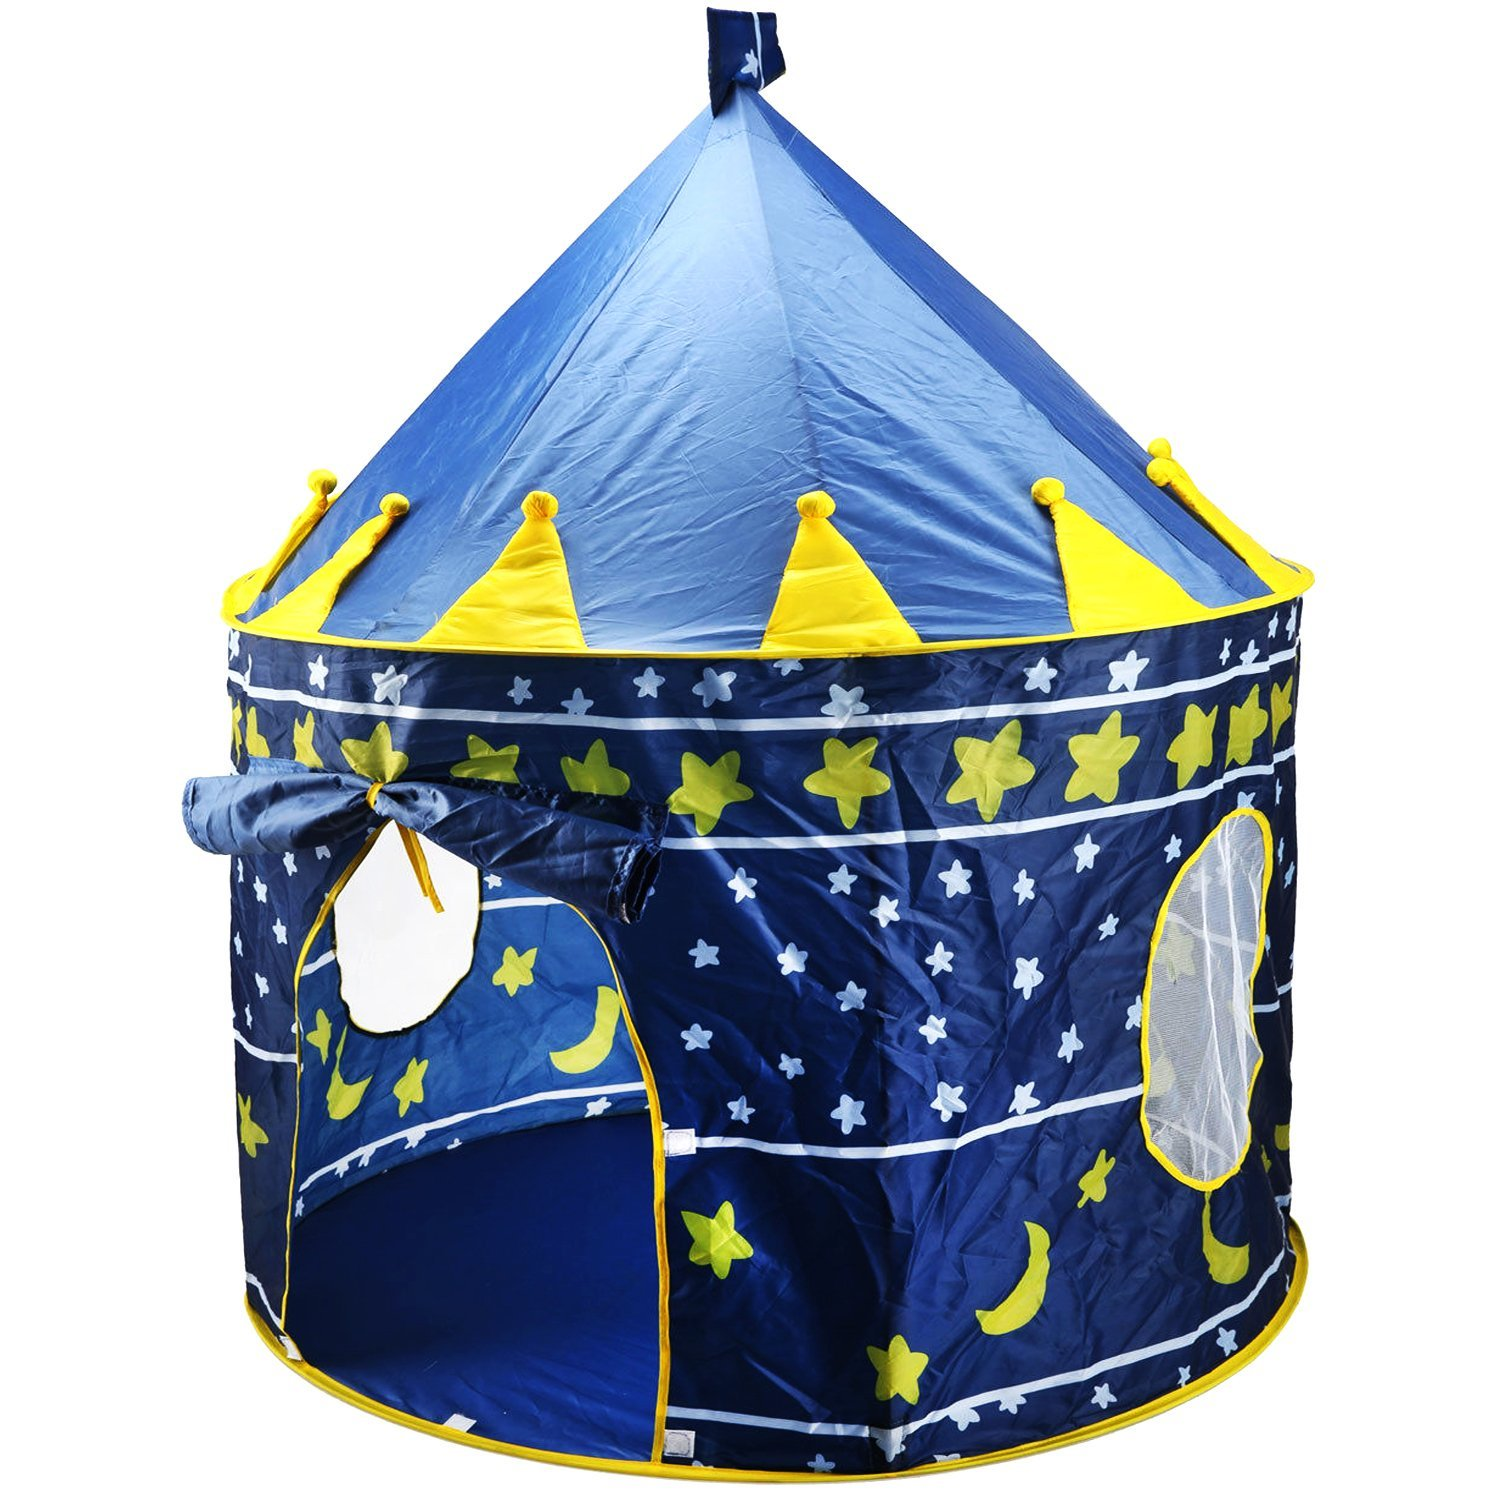 Children Play Tent Boys Girls Prince House Indoor Outdoor Blue Foldable Tent with Case by Creatov  sc 1 st  Walmart : bed tent for kids - memphite.com